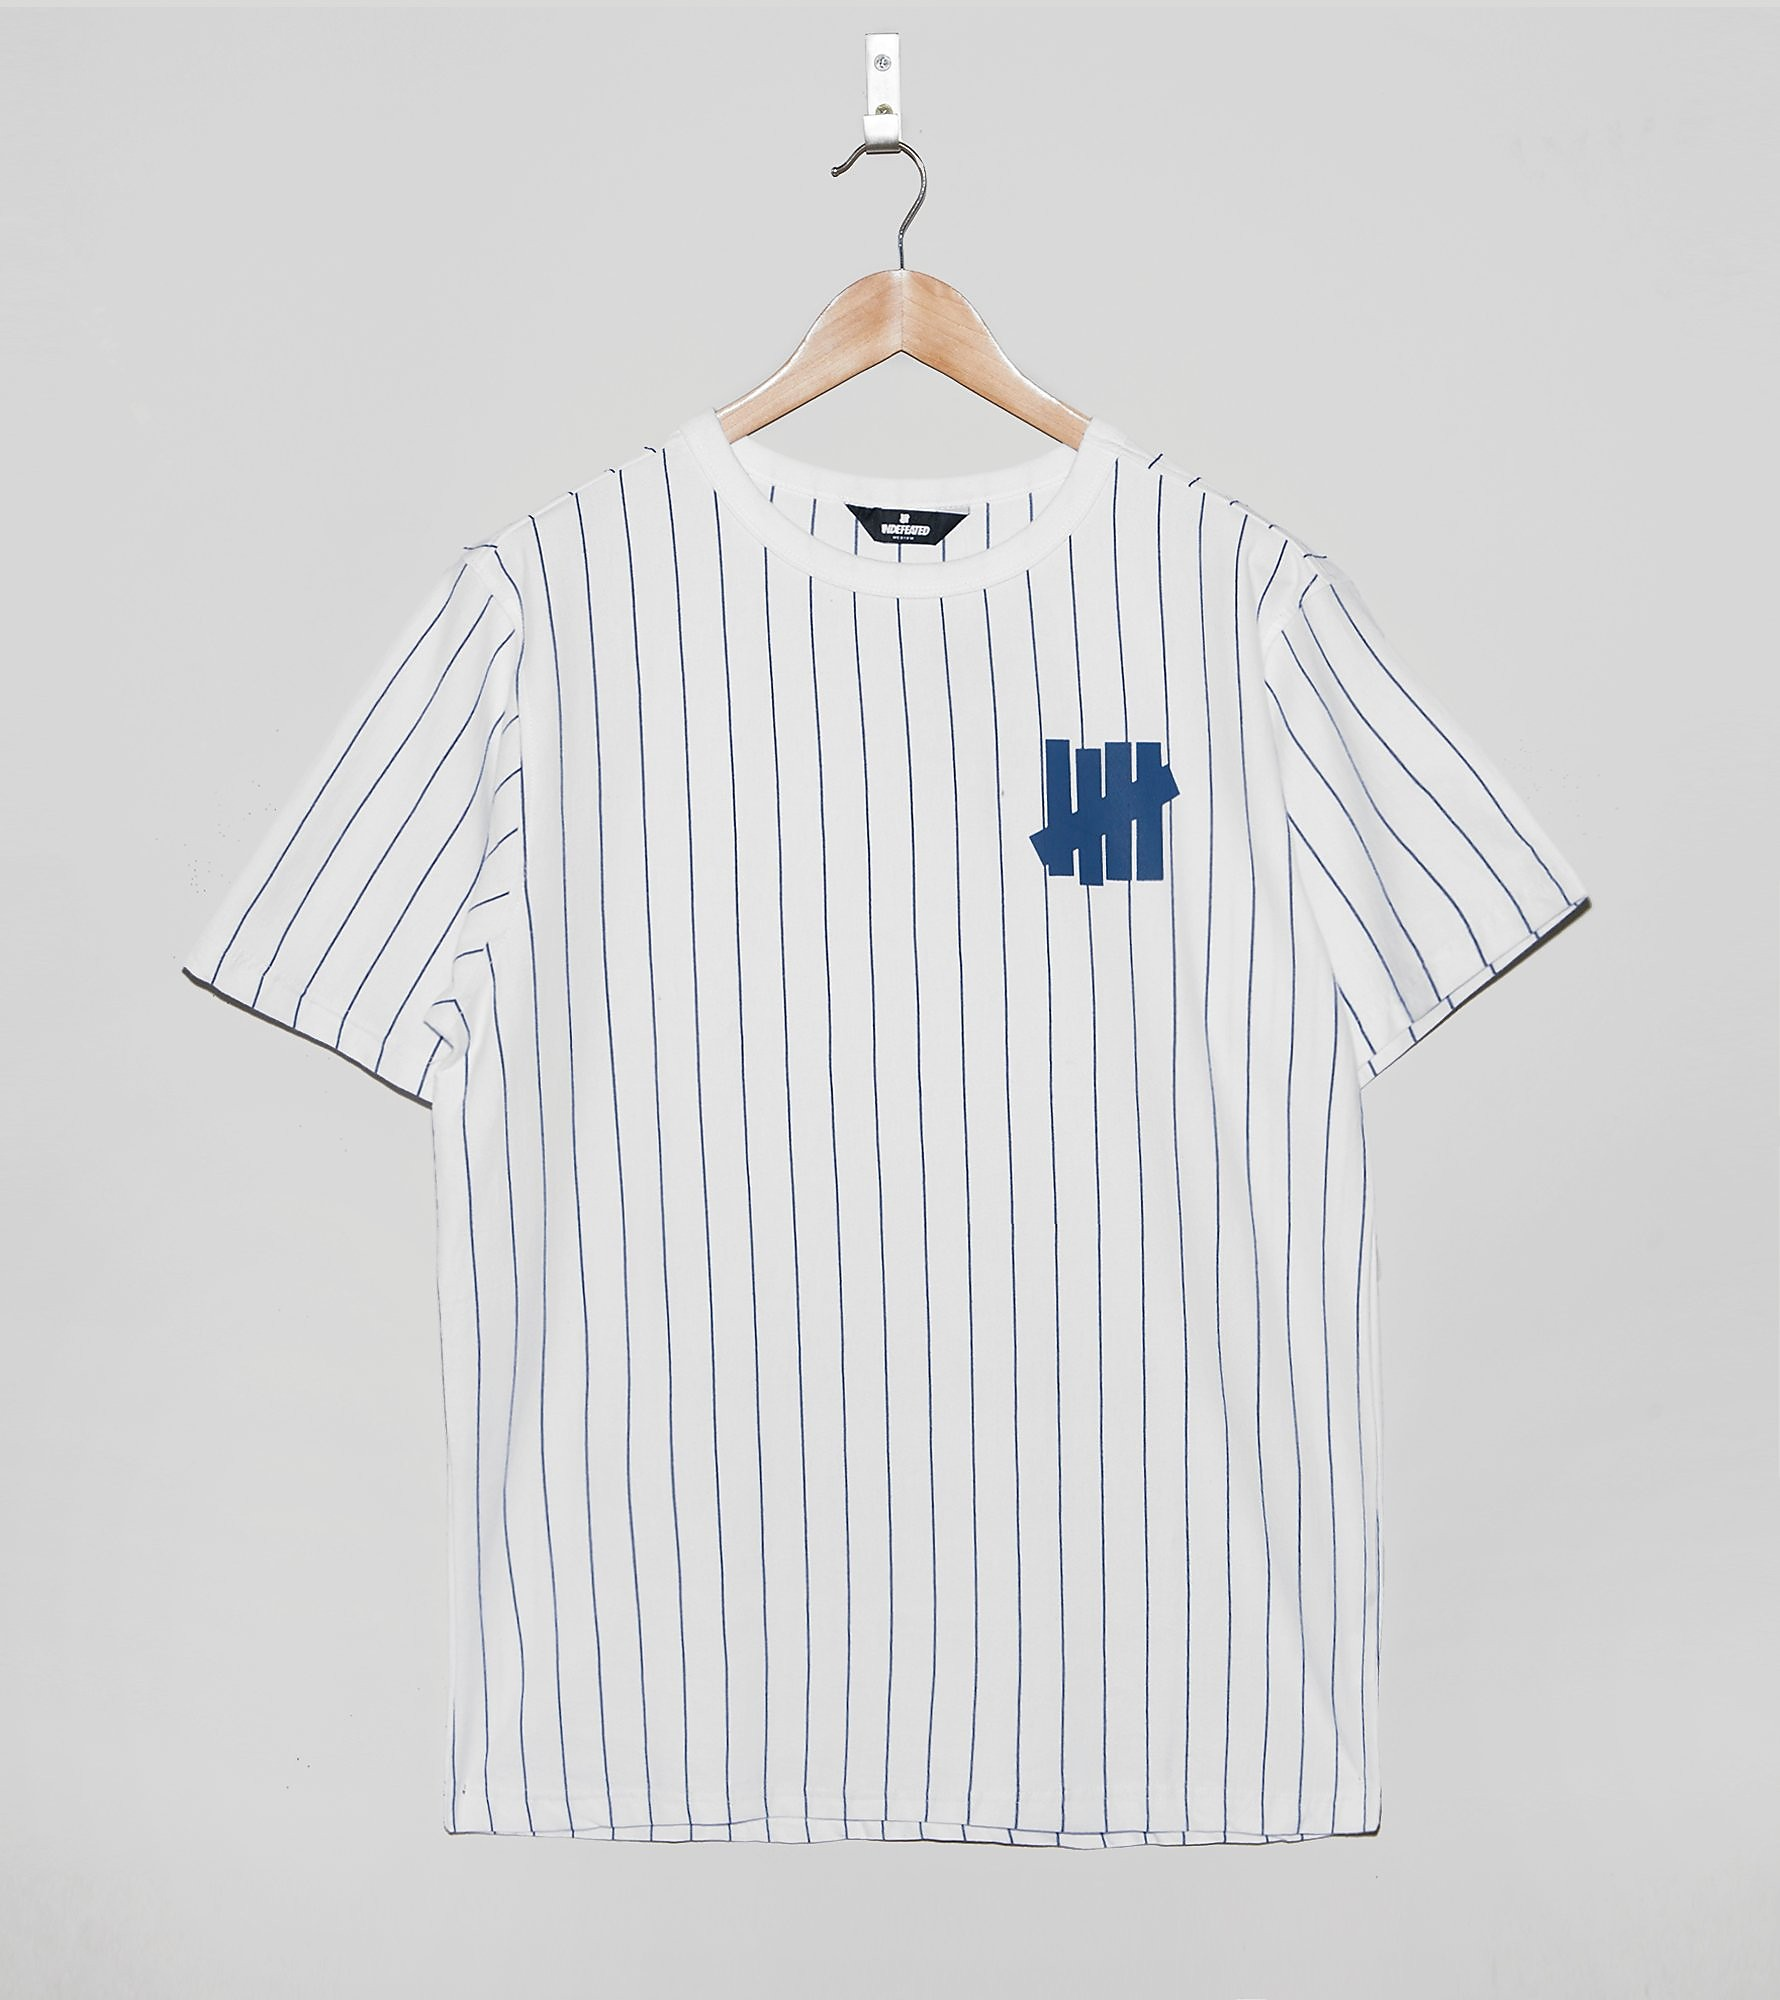 Undefeated Pinstripe Crew T-Shirt